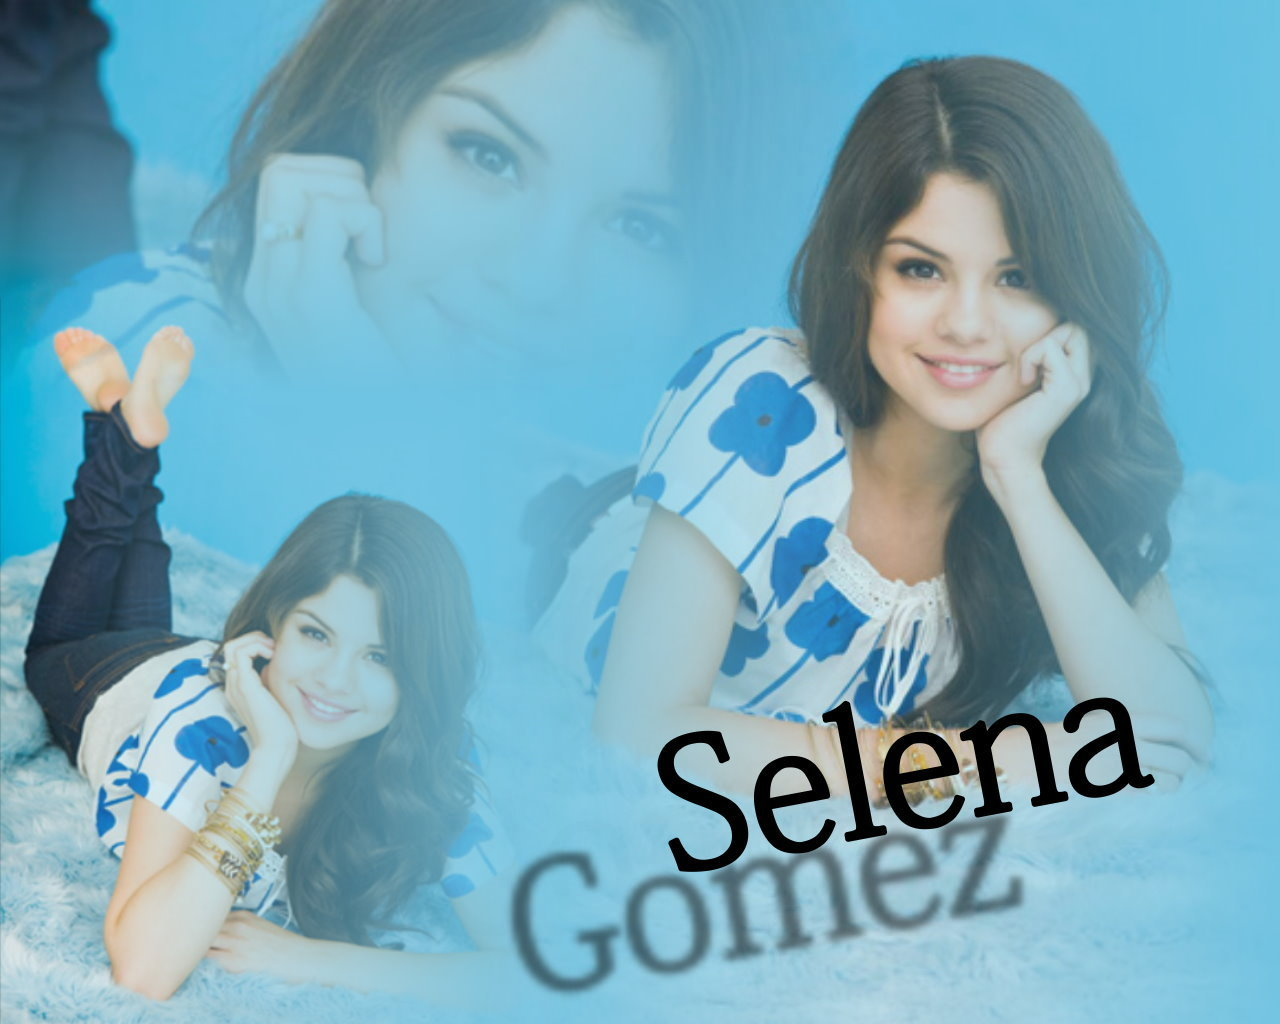 Selena Gomez Wallpaper Collection 1 Anything Wallpaper 1280x1024